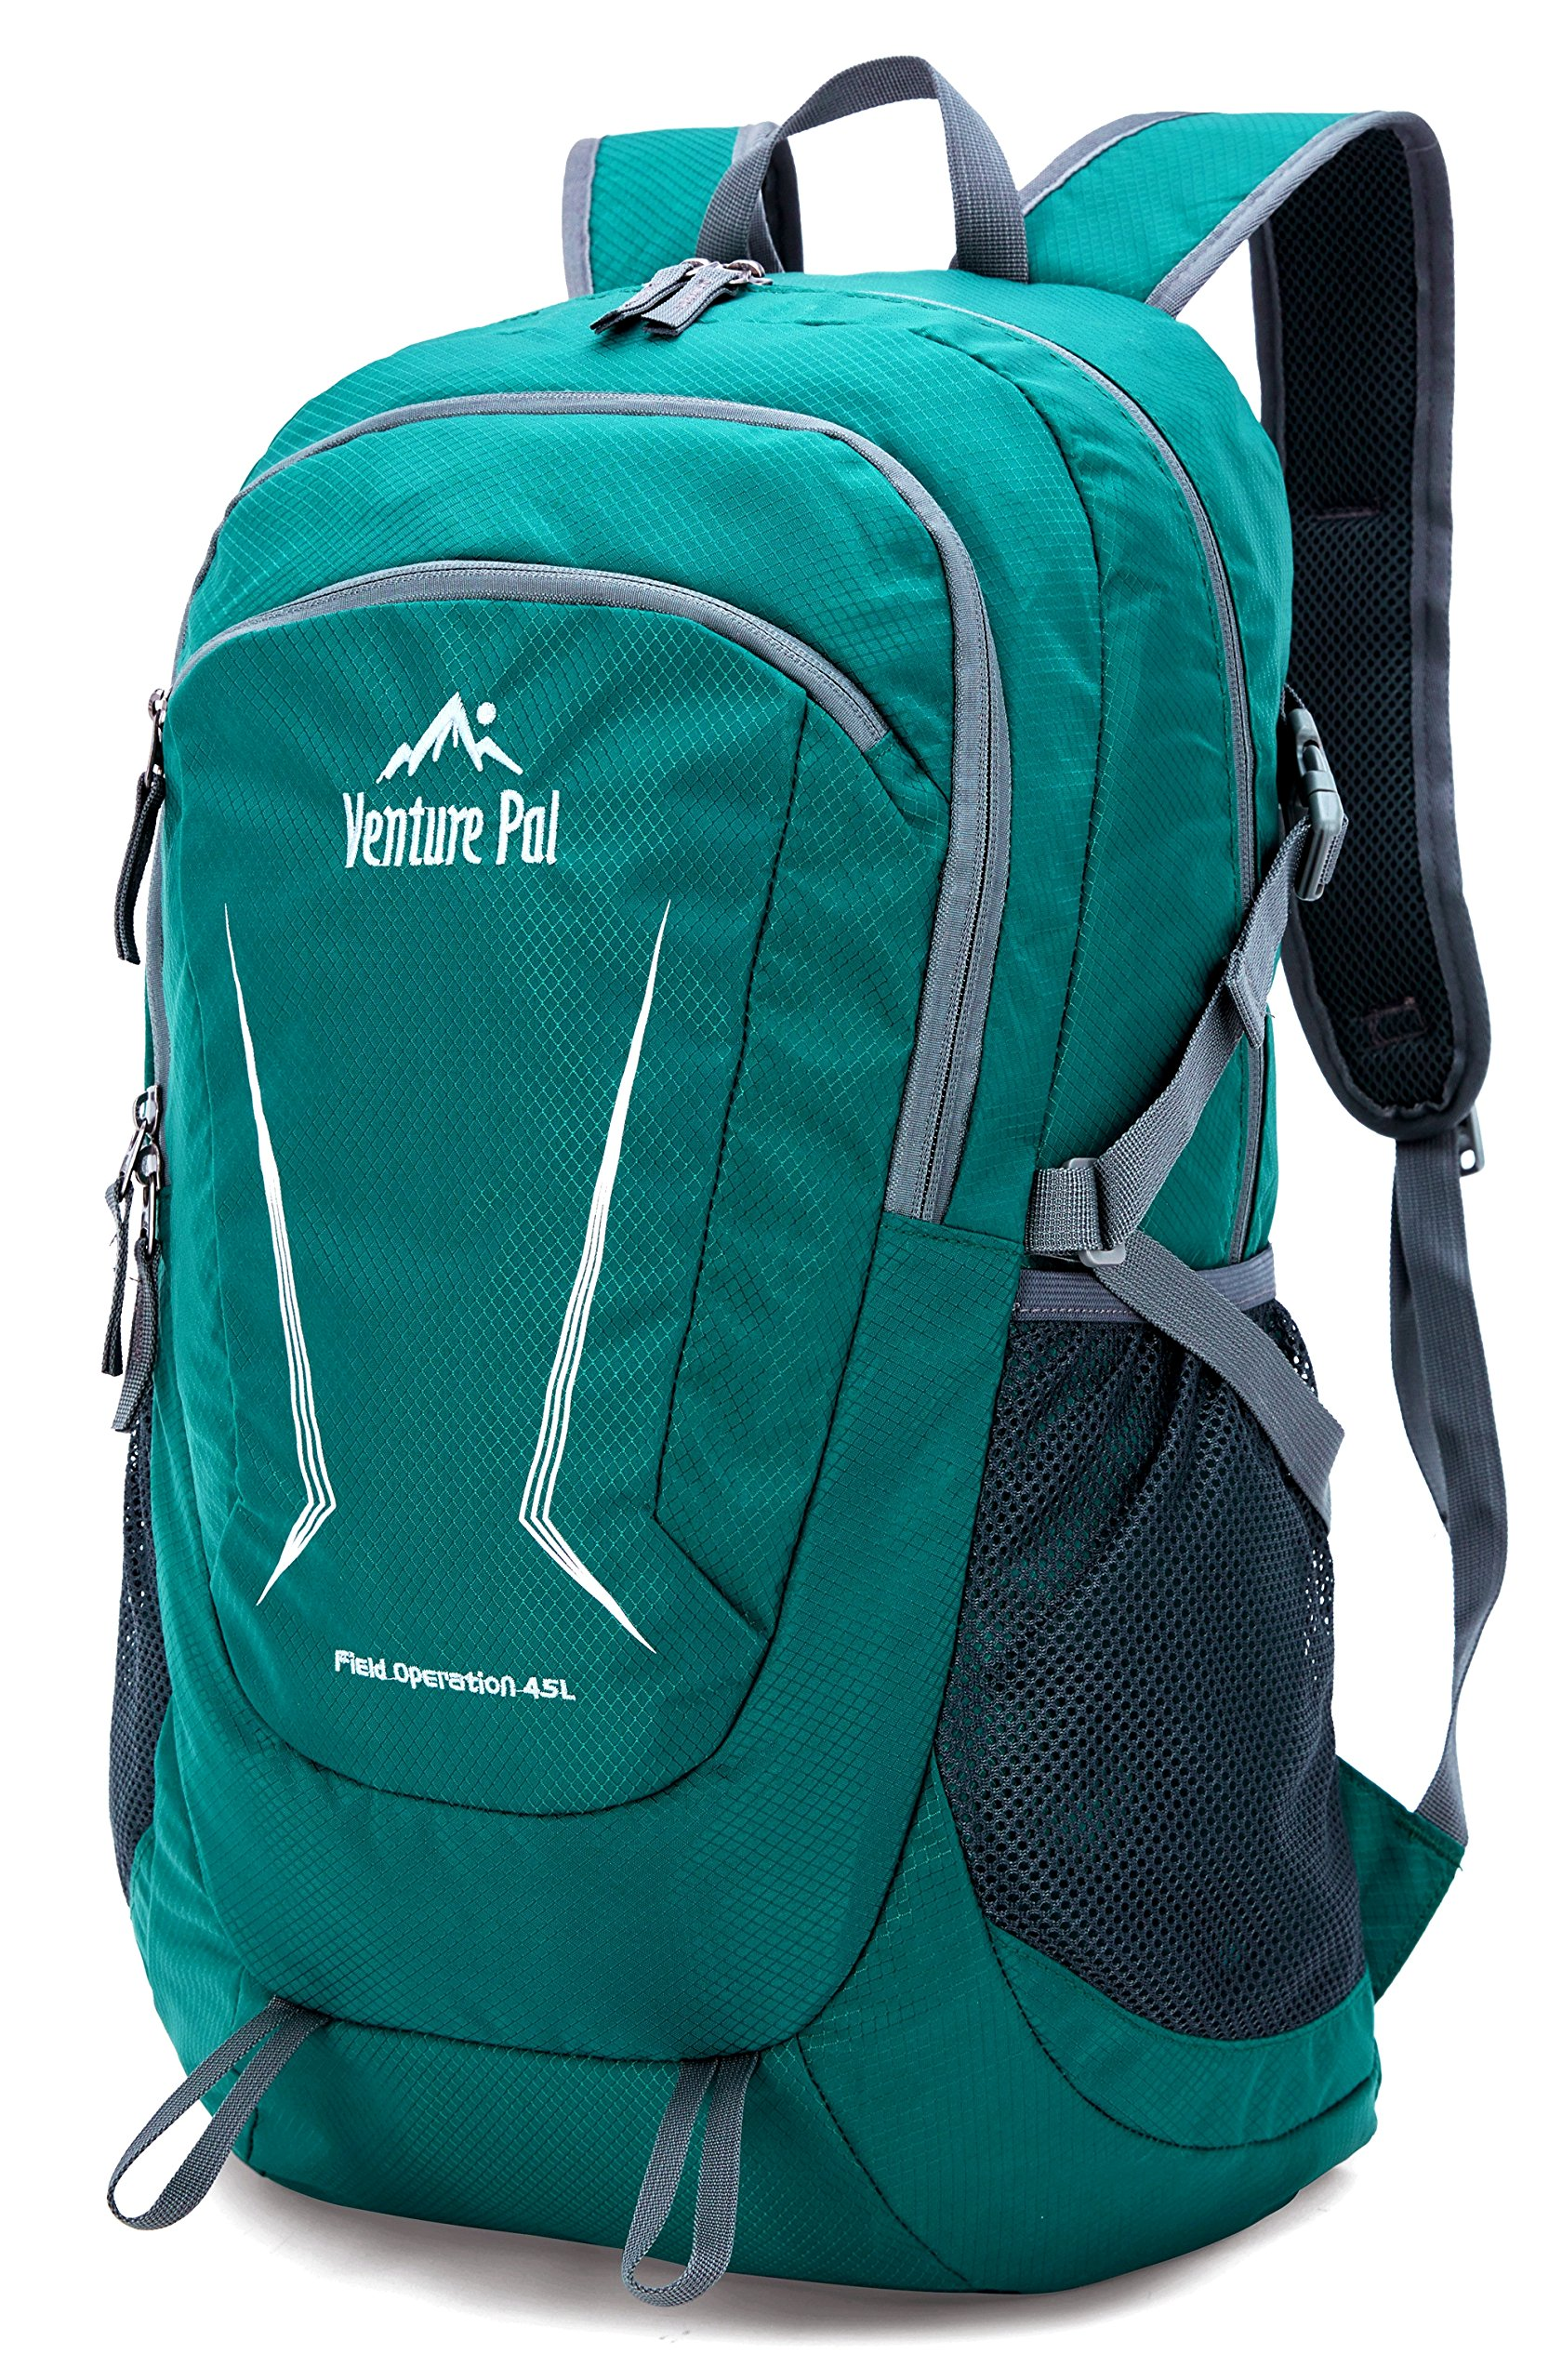 Galleon - Venture Pal Large 45L Hiking Backpack - Packable Lightweight  Travel Backpack Daypack For Women Men (Green) 1fa0258dbbc5a